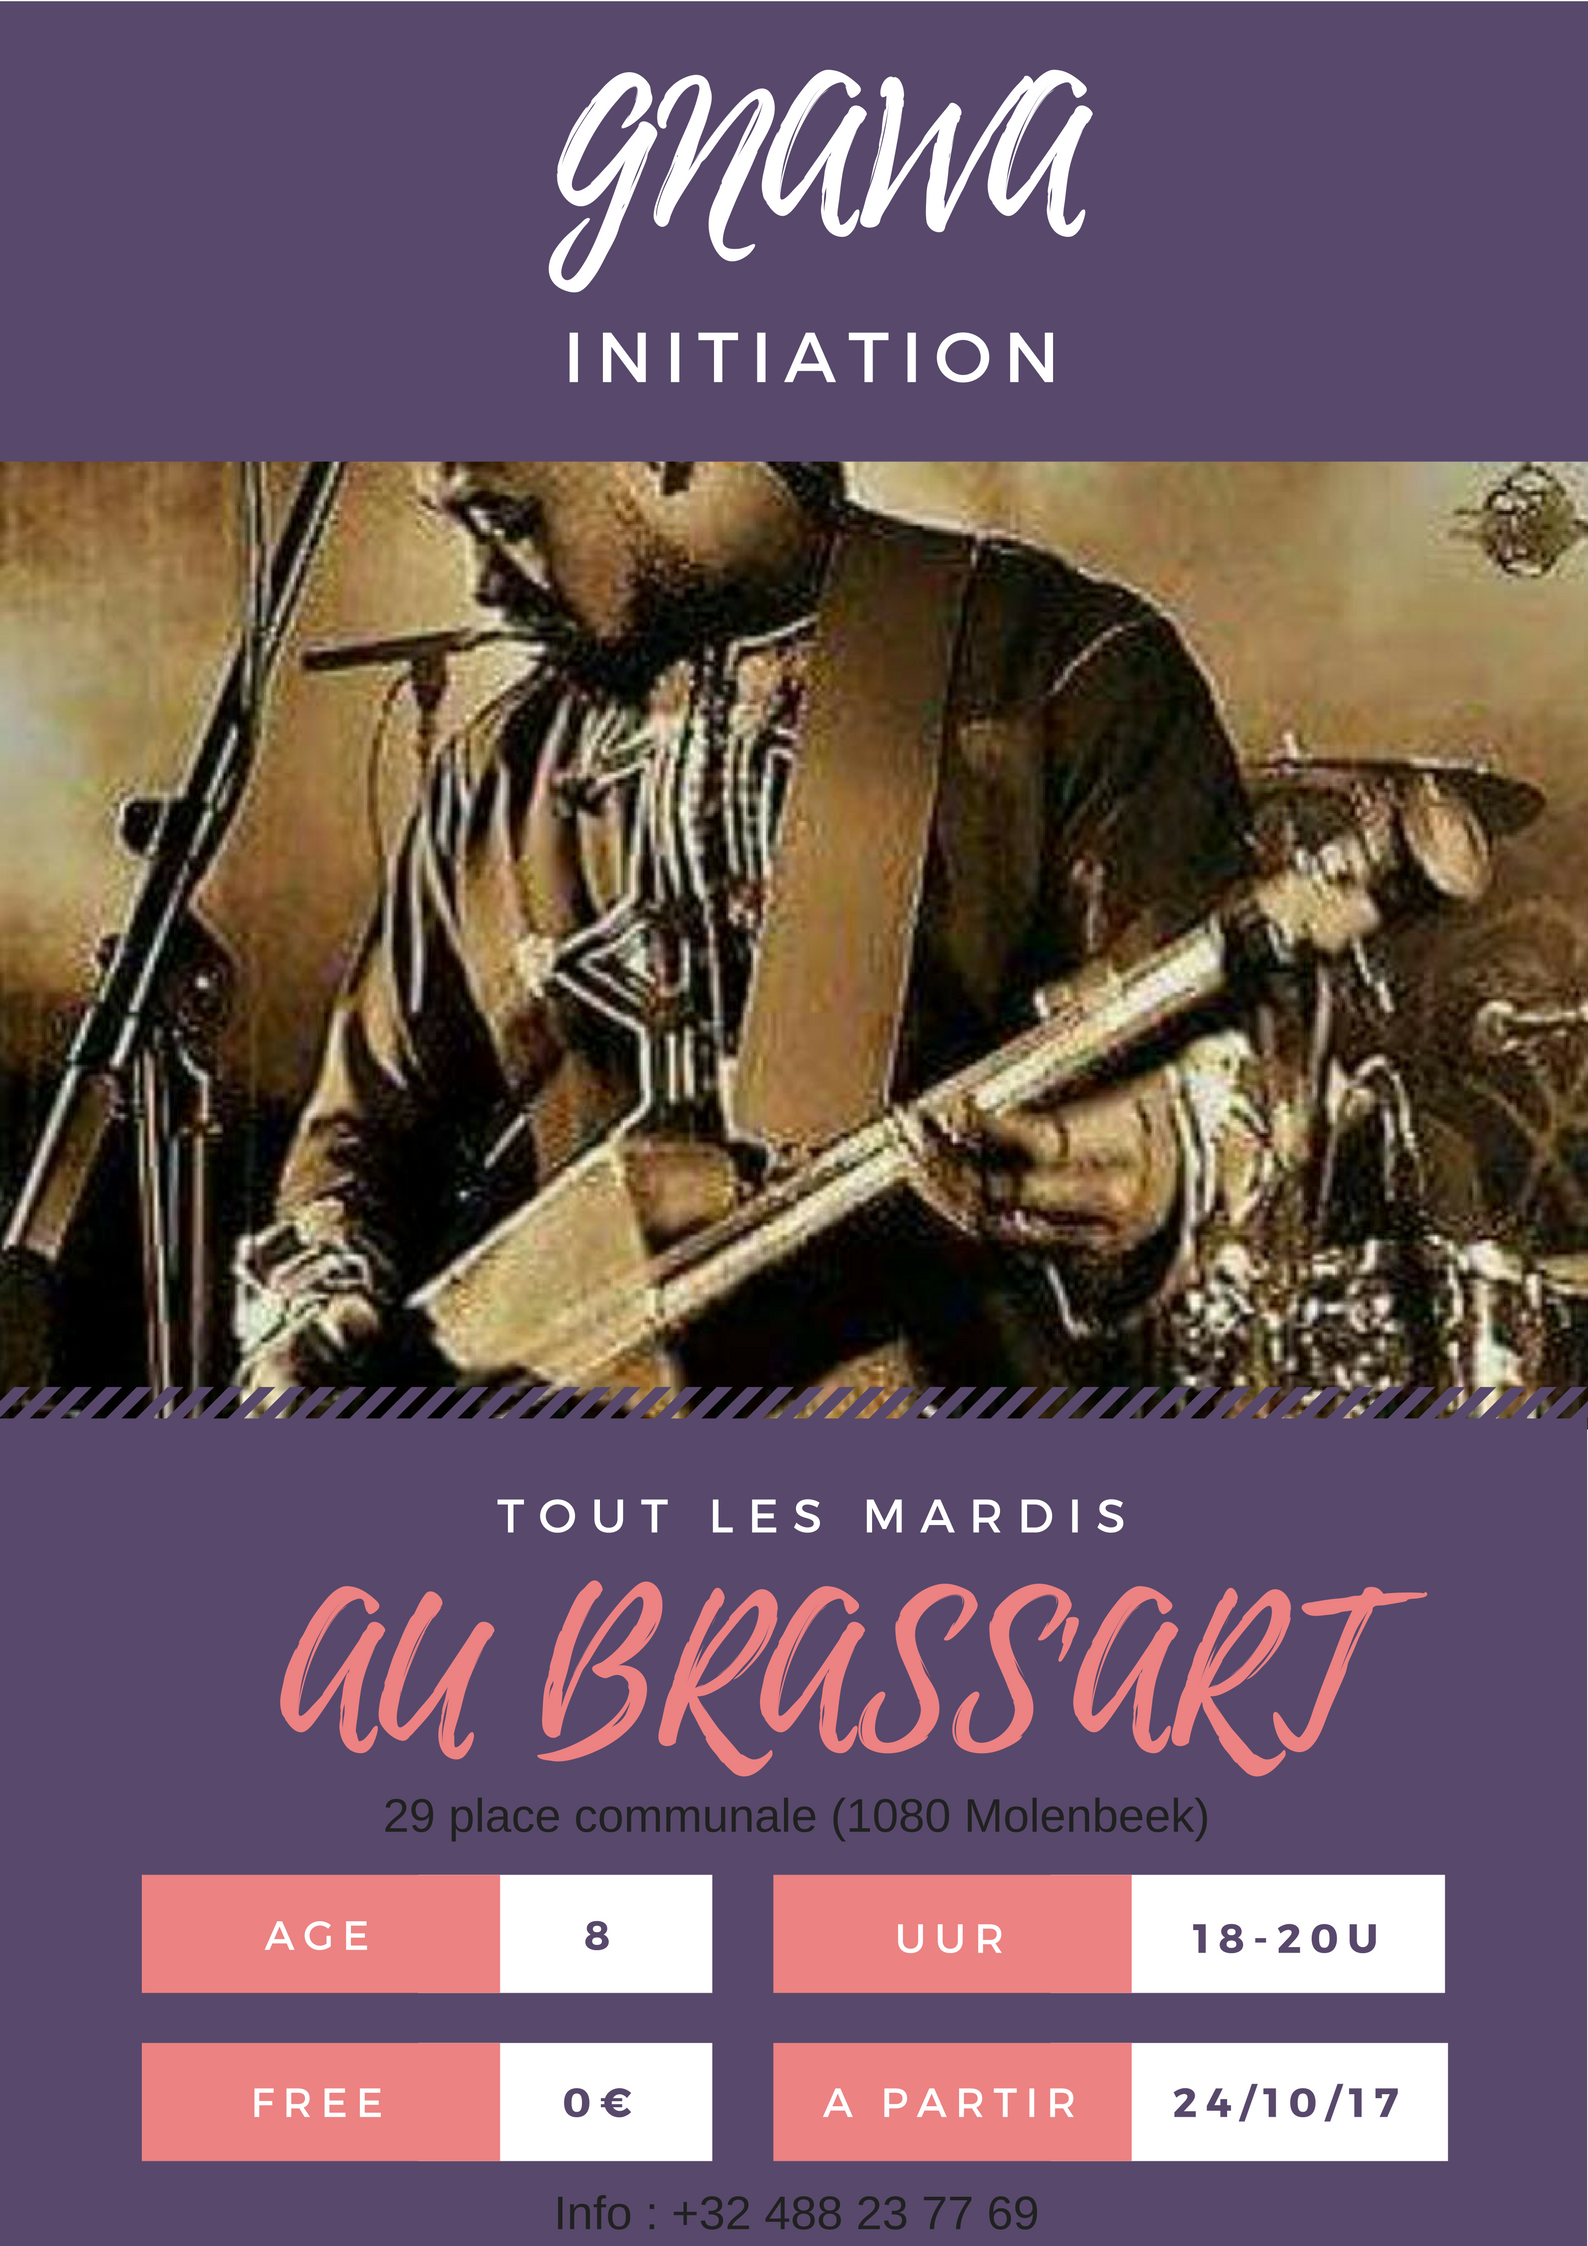 BRASS'ART DIGITAAL CAFE